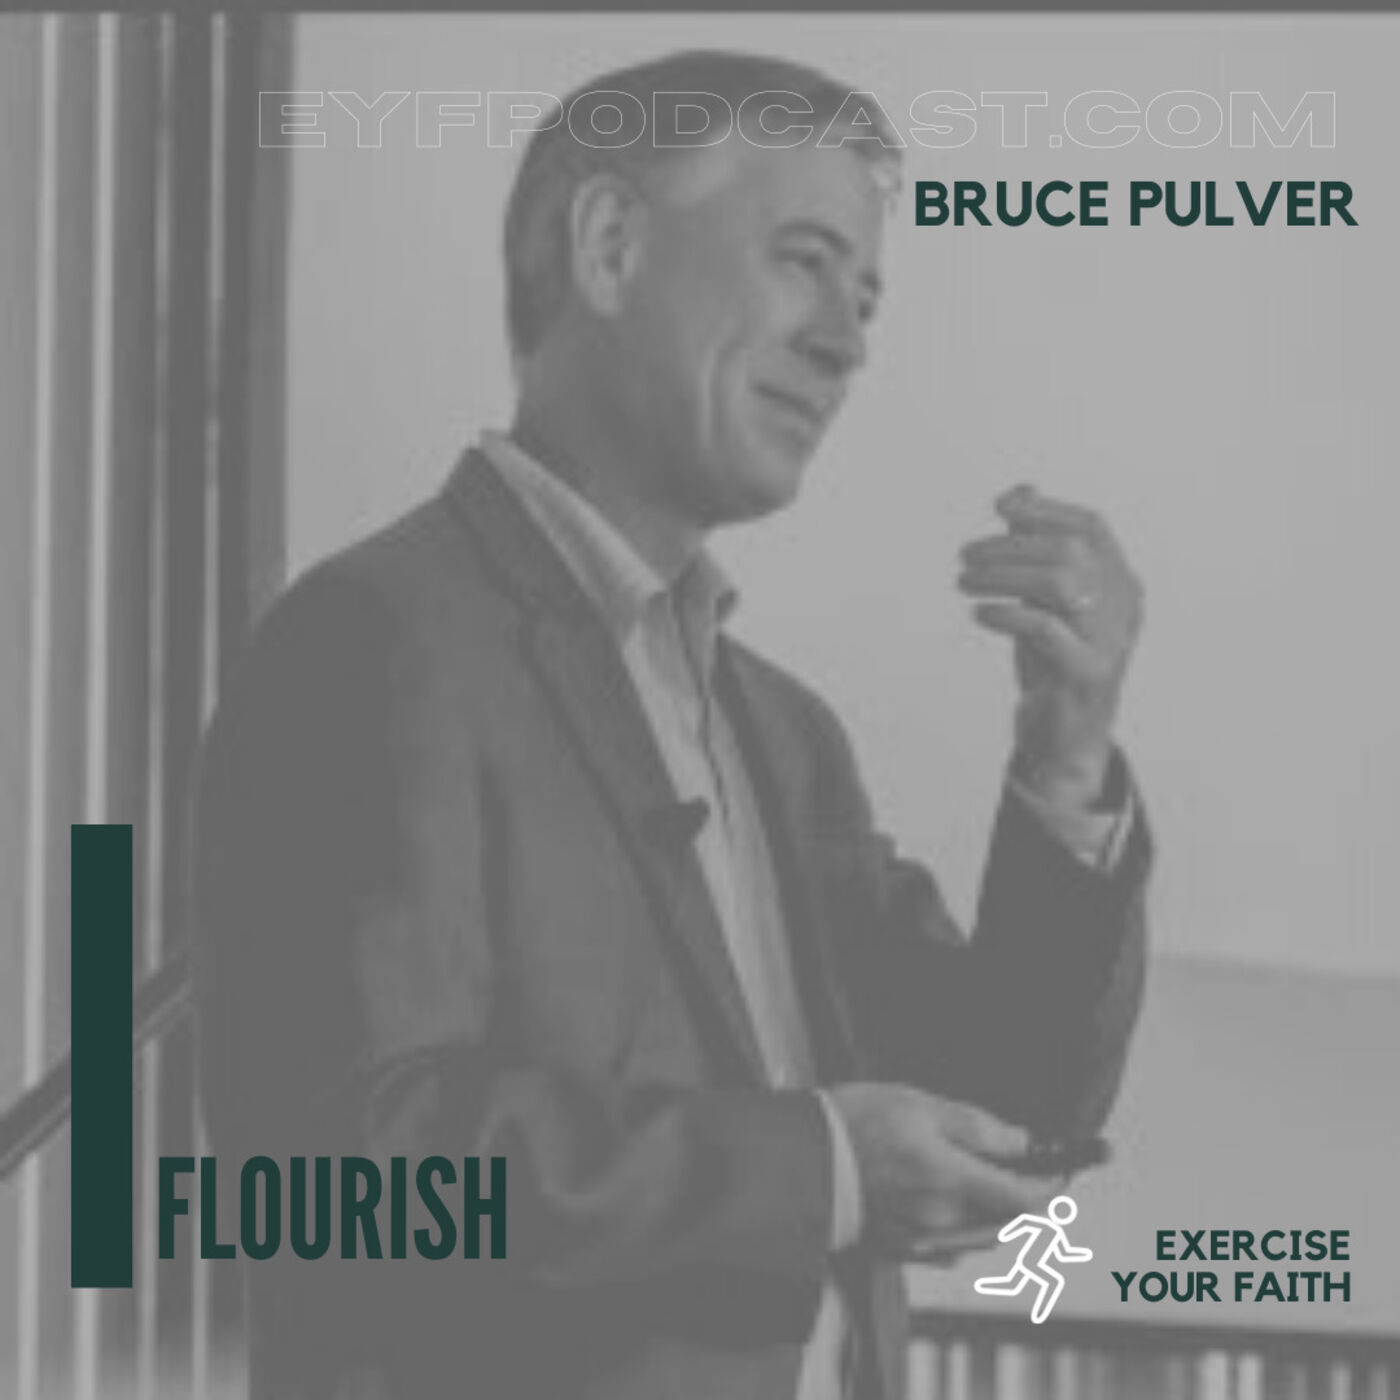 EYFPodcast- Exercise Your Faith with Bruce Pulver and FLOURISH!